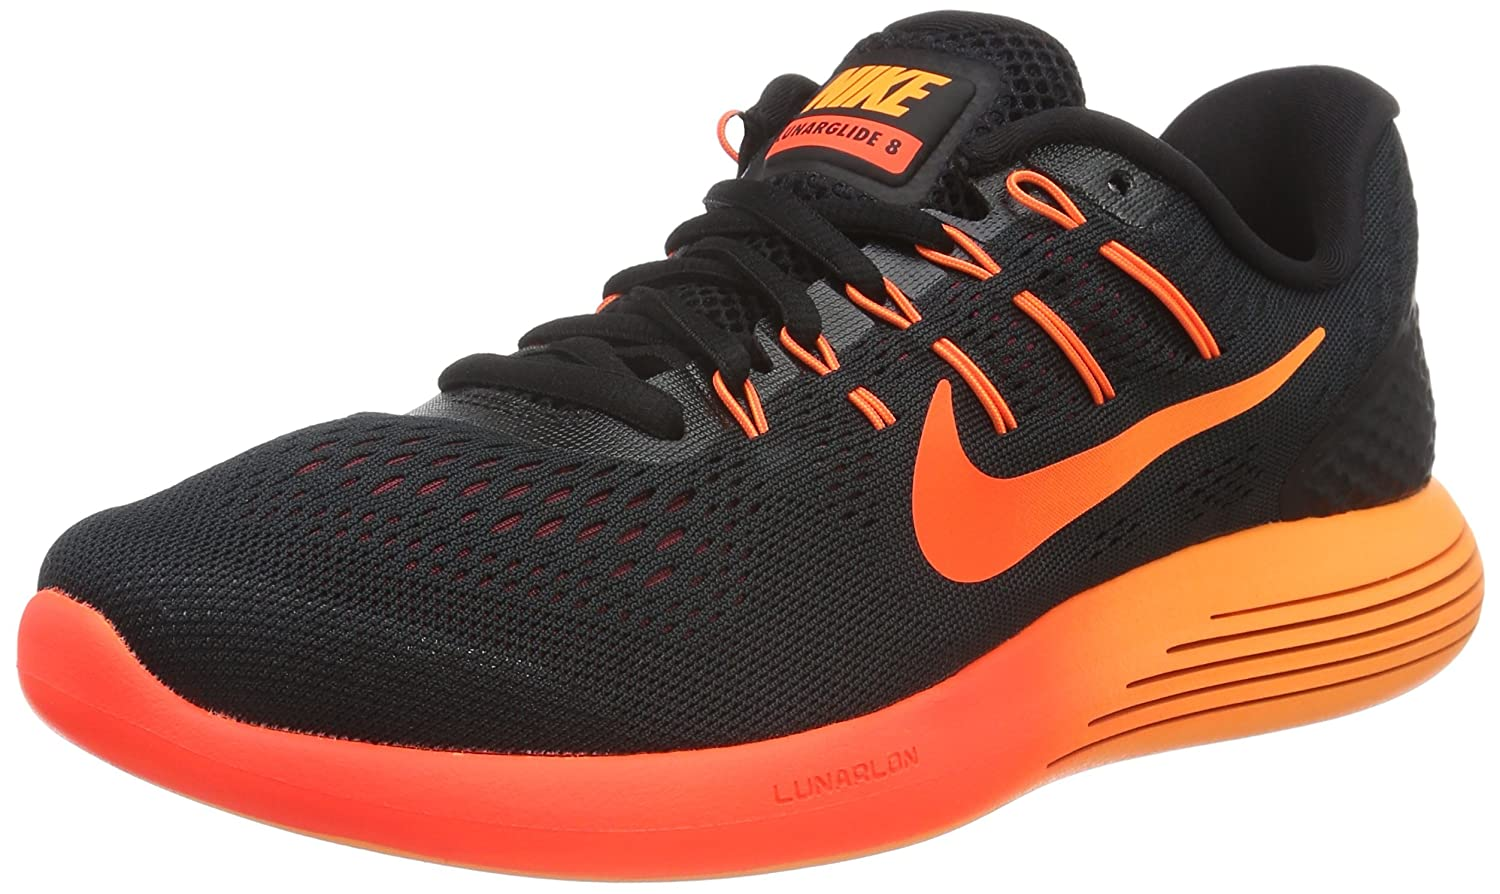 reputable site 8036f 26931 Nike Men s Lunarglide 8 Running Shoes Black  Amazon.co.uk  Shoes   Bags